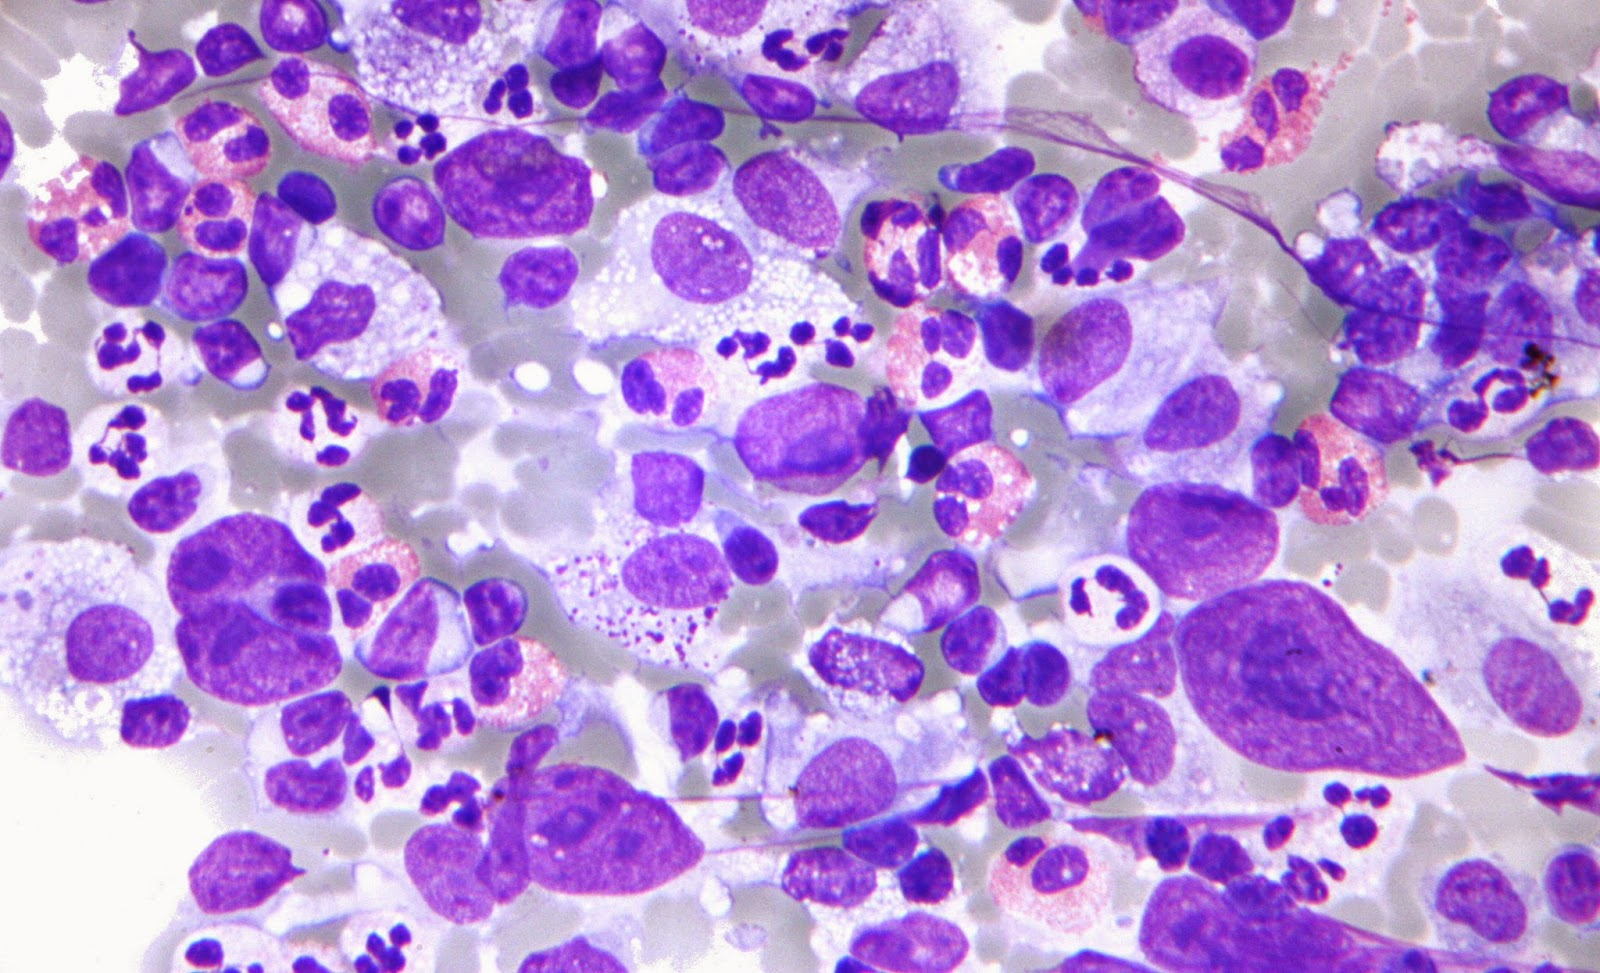 Immunotherapy Drugs Improve Outcomes In Hodgkin Lymphoma Patients